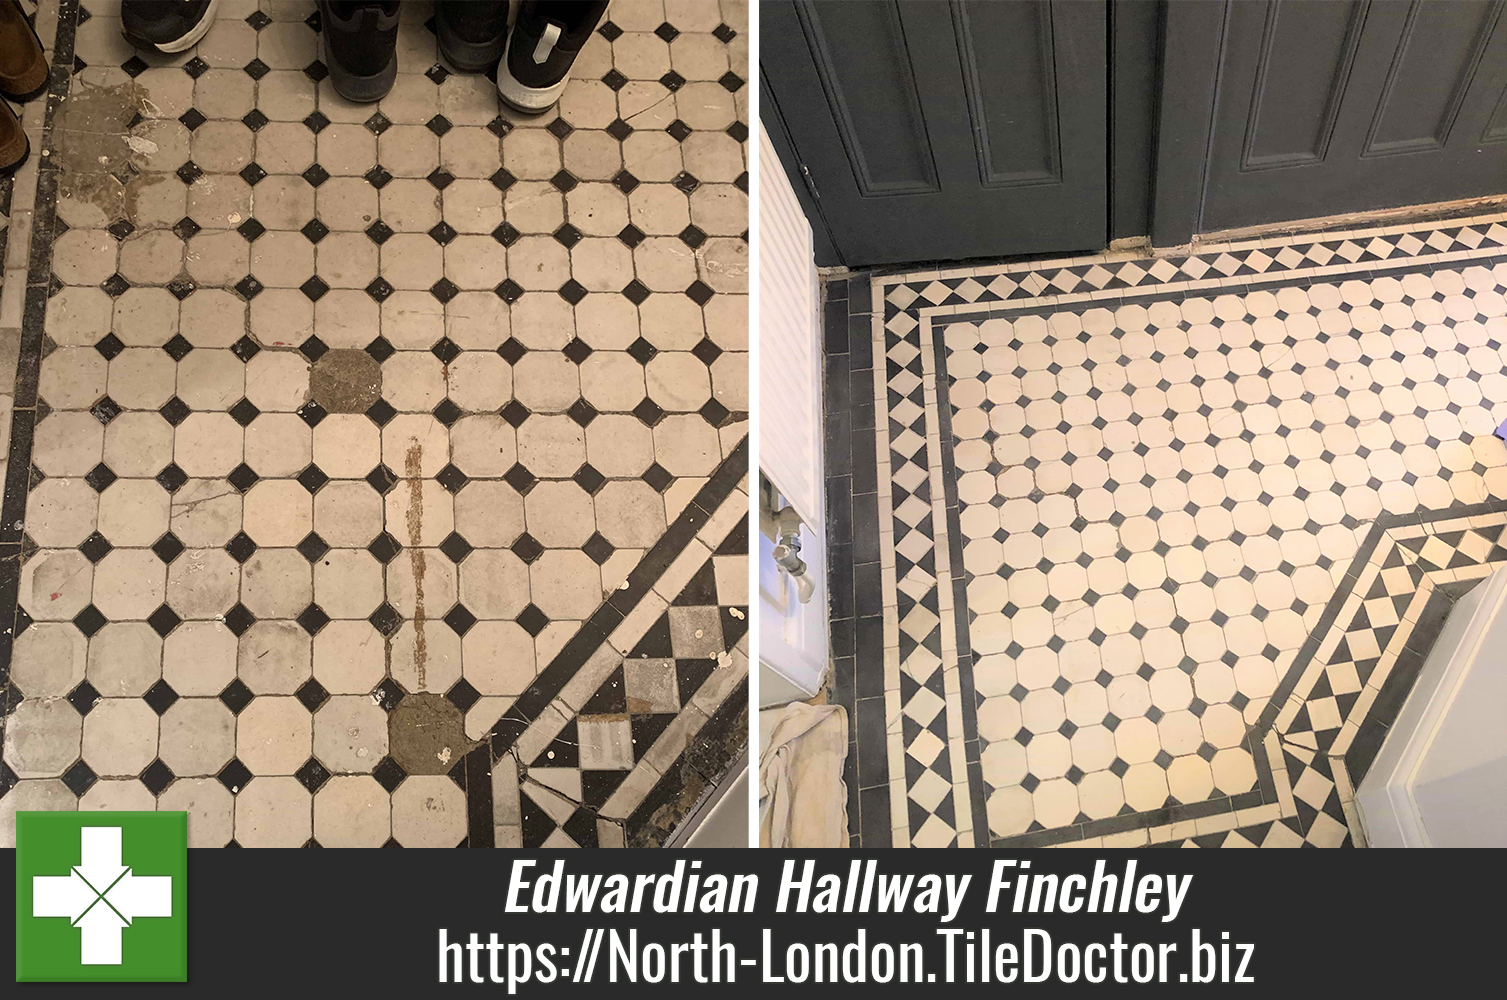 Edwardian Tiled Hallway Floor Restored in Finchley